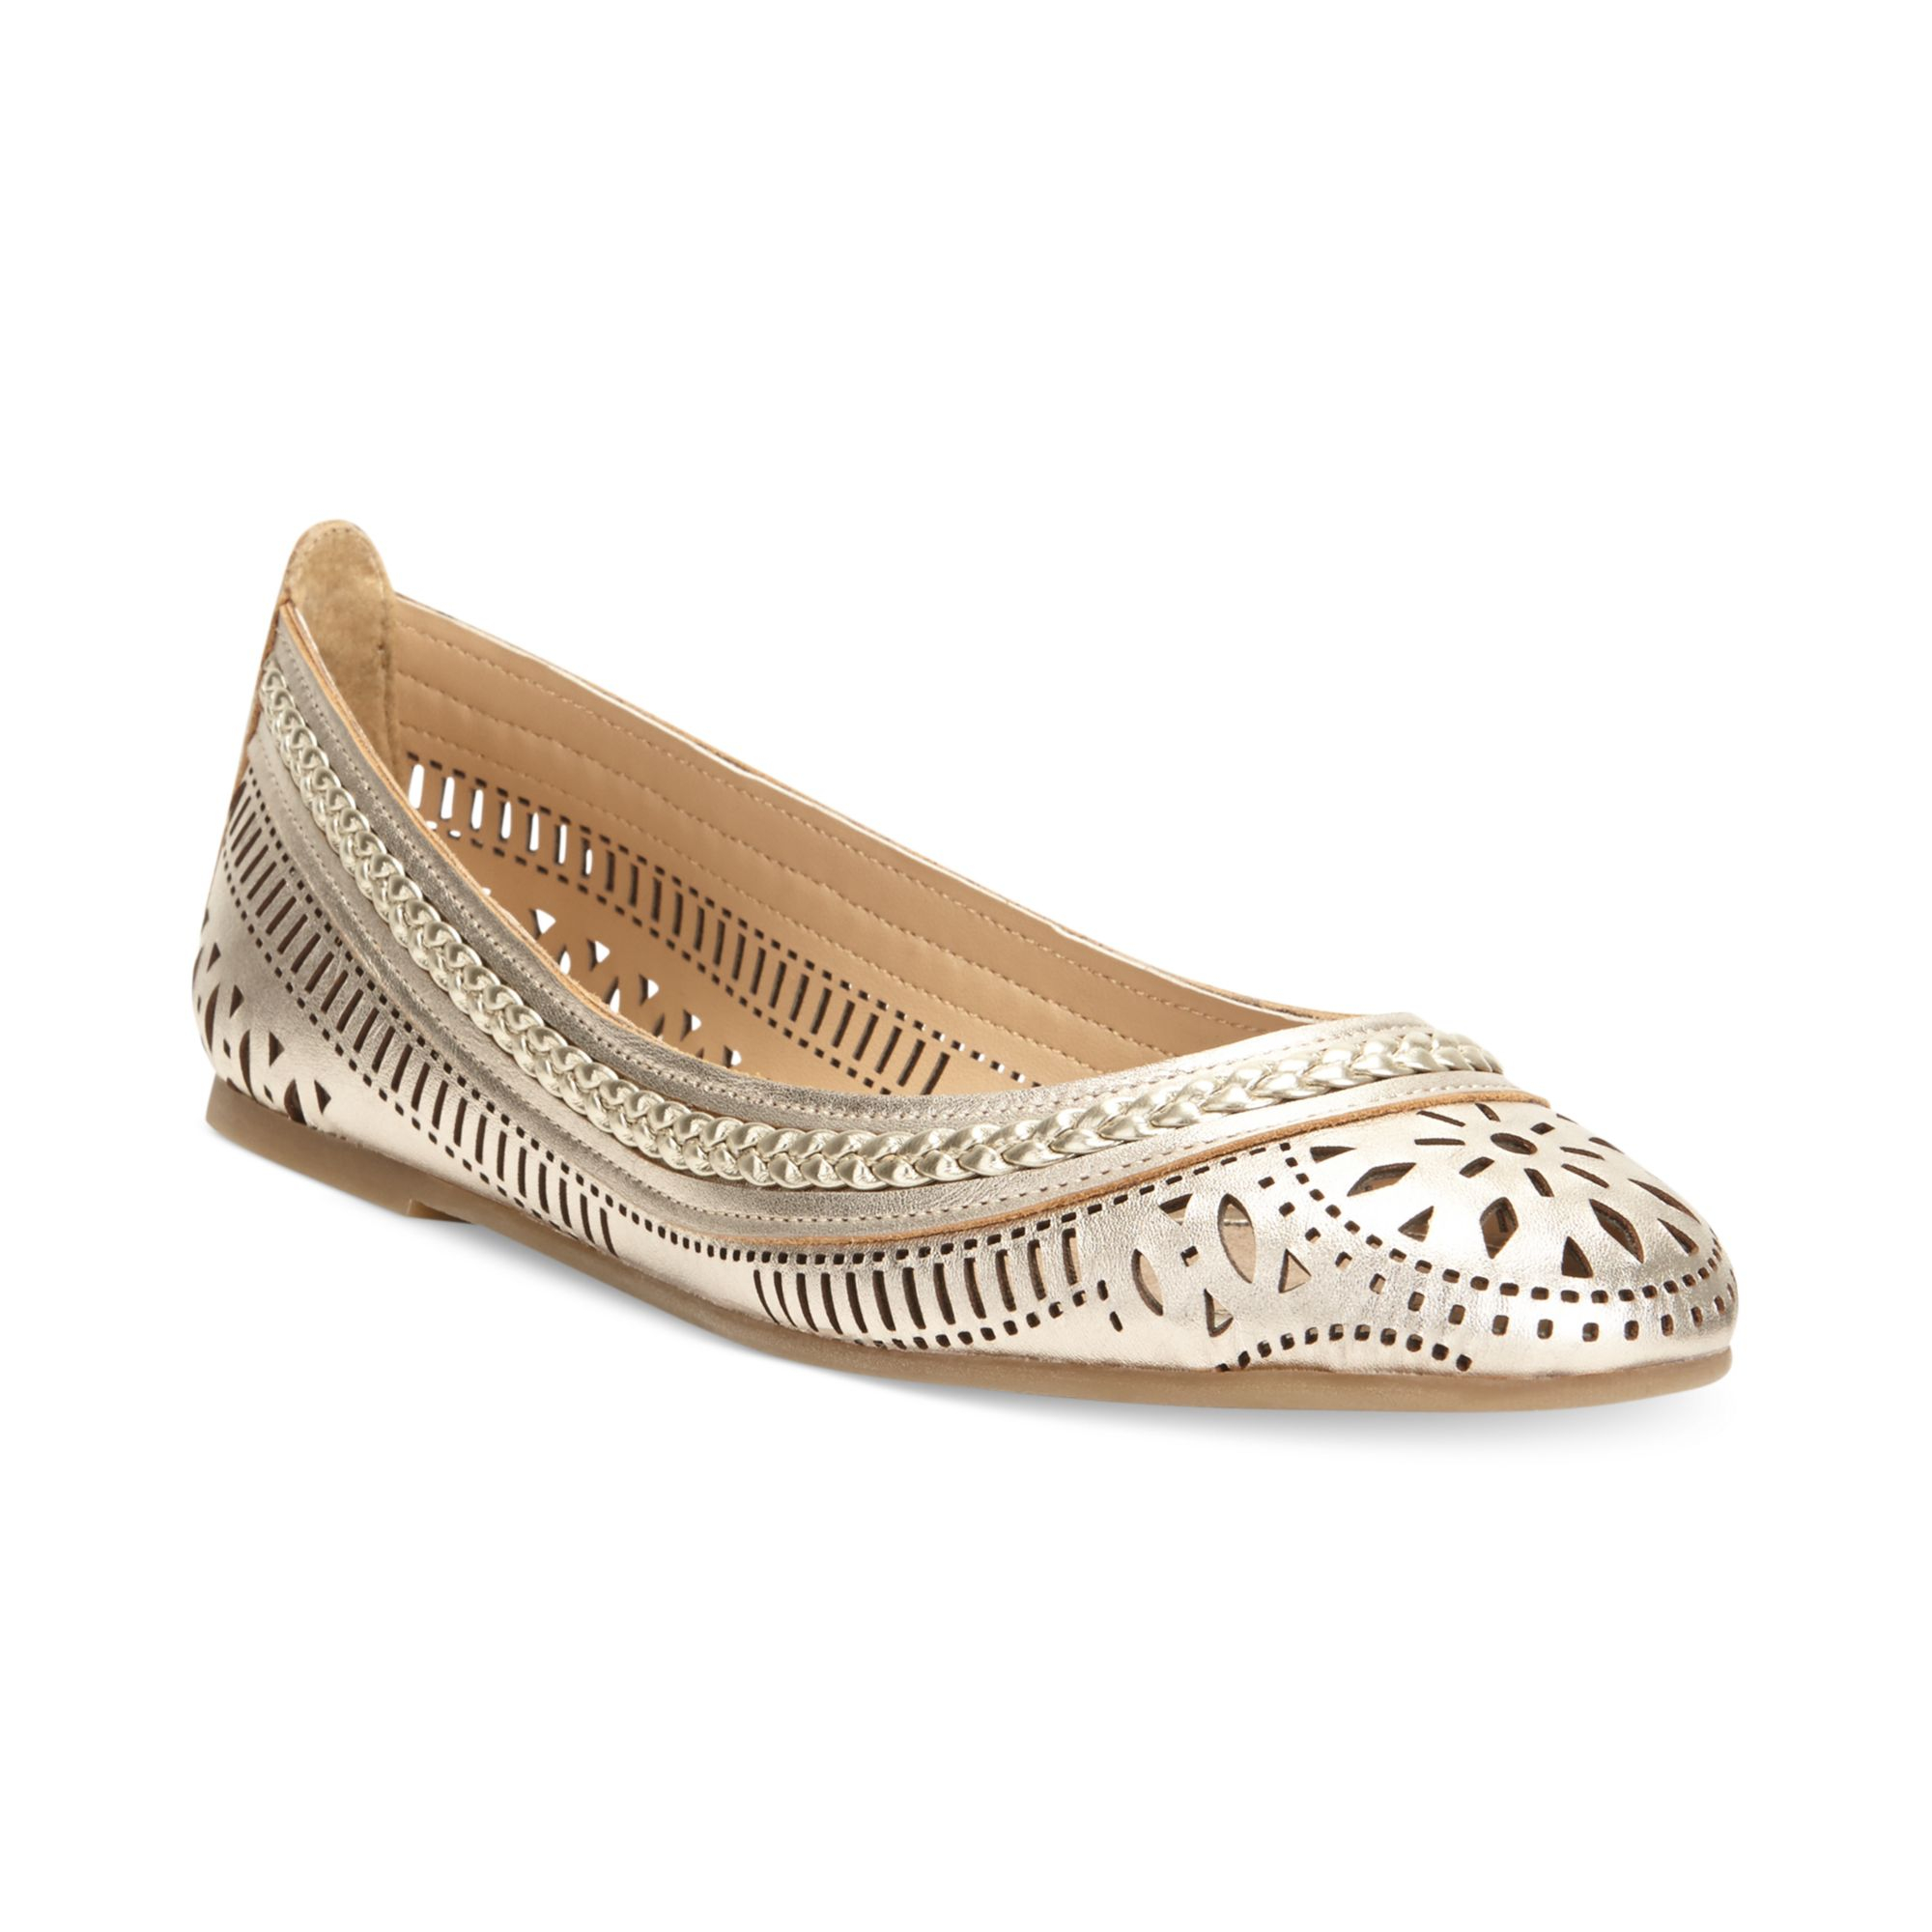 Outlet 2018 Bella Vita Vesper Ballet Flat(Women's) -Black Suede Latest Collections Online New Arrival Cheap Price Clearance Best Prices VOojaBcYP